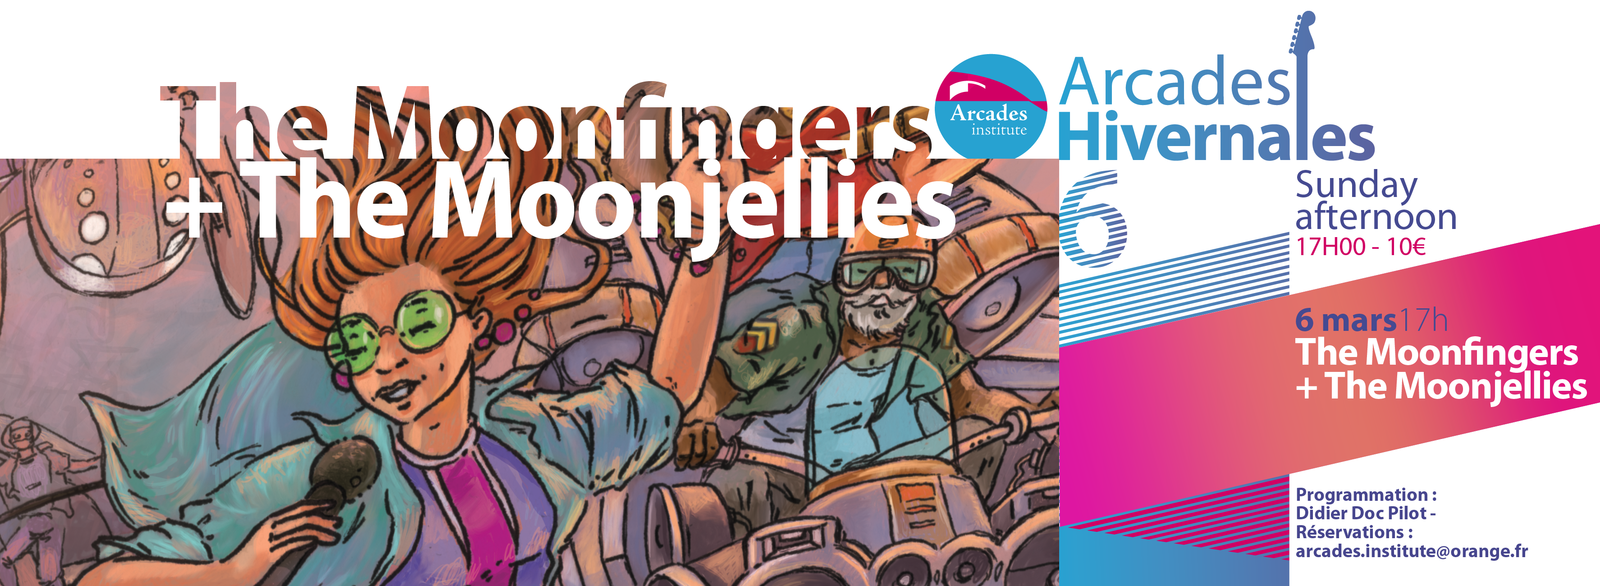 Dimanche 6 mars 17h The Moonfingers + The Moonjellies